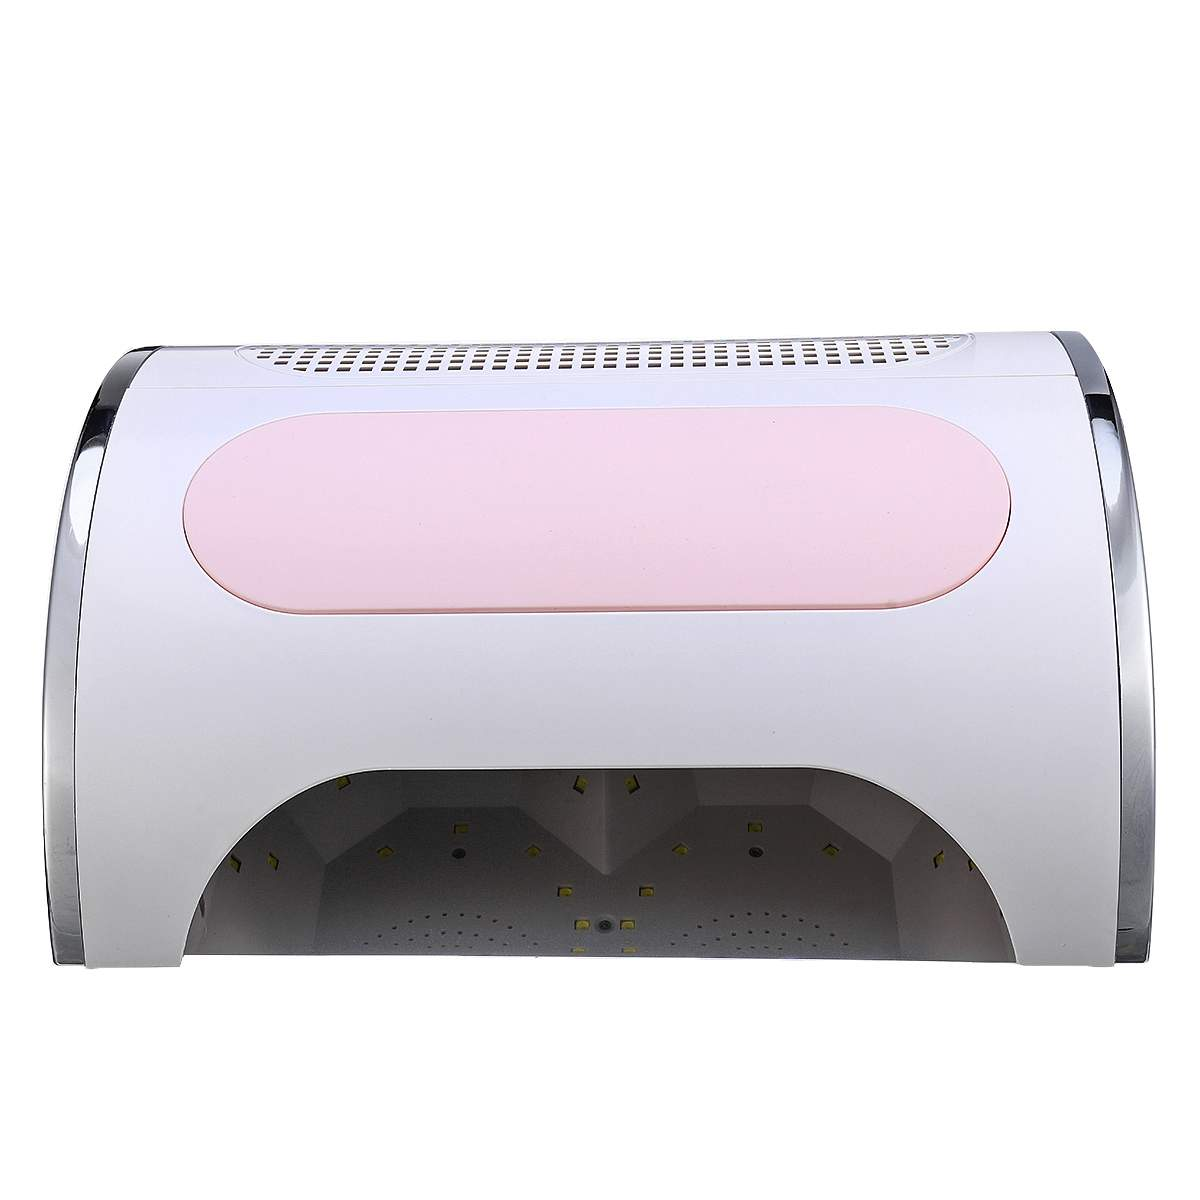 54W Nail LED UV Lamp Vacuum Cleaner Suction Dust Collector 25000RPM Drill Machine Pedicure Remover Polish Tools54W Nail LED UV Lamp Vacuum Cleaner Suction Dust Collector 25000RPM Drill Machine Pedicure Remover Polish Tools